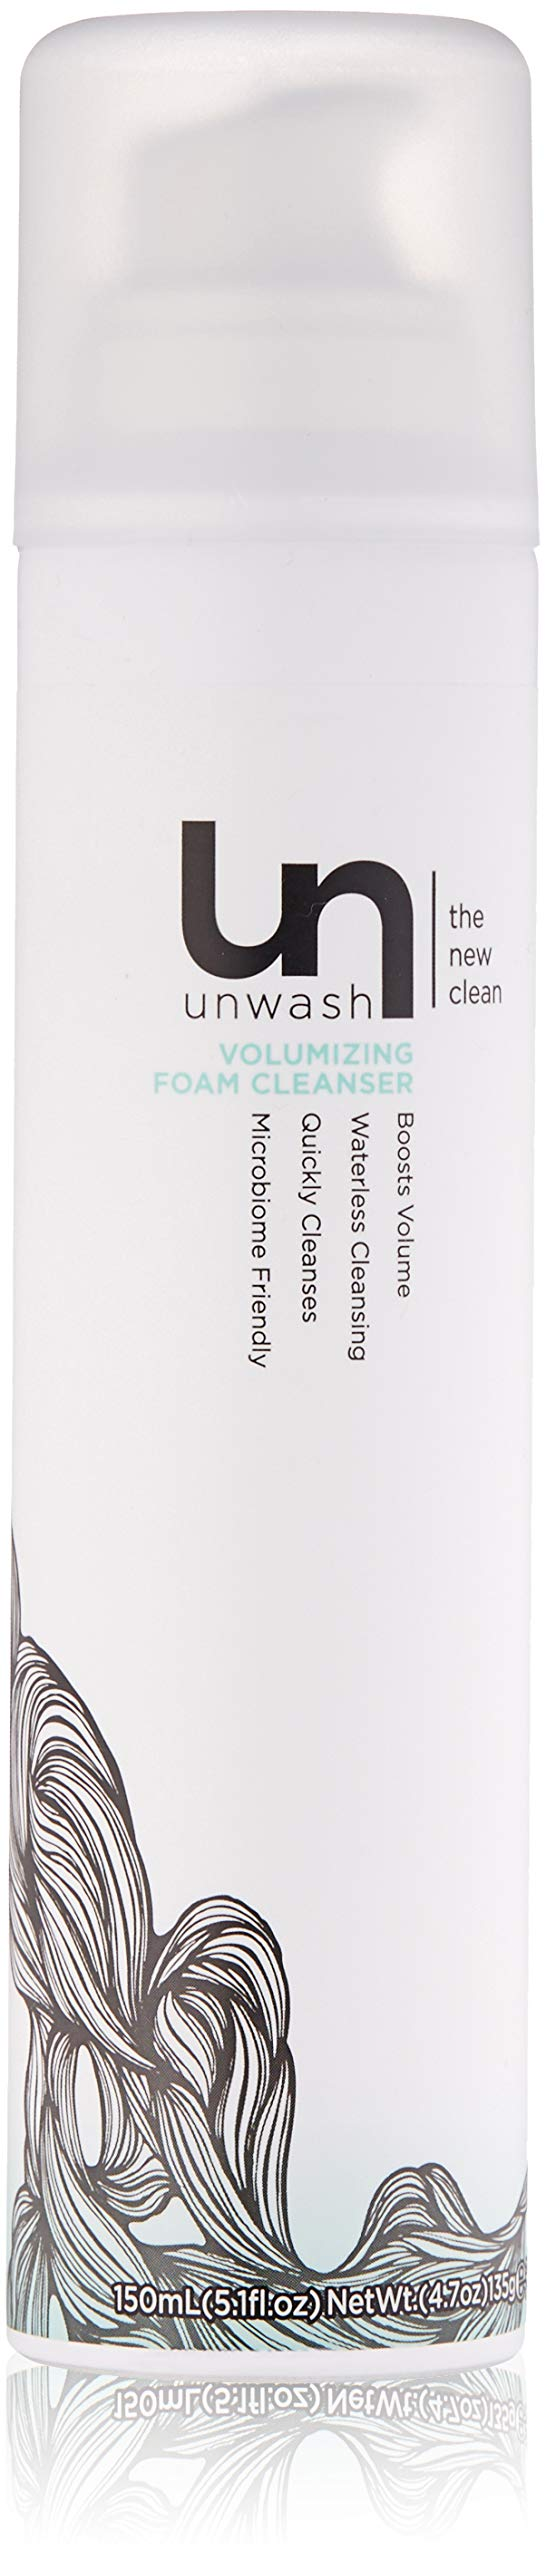 Unwash Volumizing Dry Cleanser Foam: No Rinse, Waterless, Dry Shampoo for Fine Hair and Extra Volume, 5.1 Fl Oz by unwash